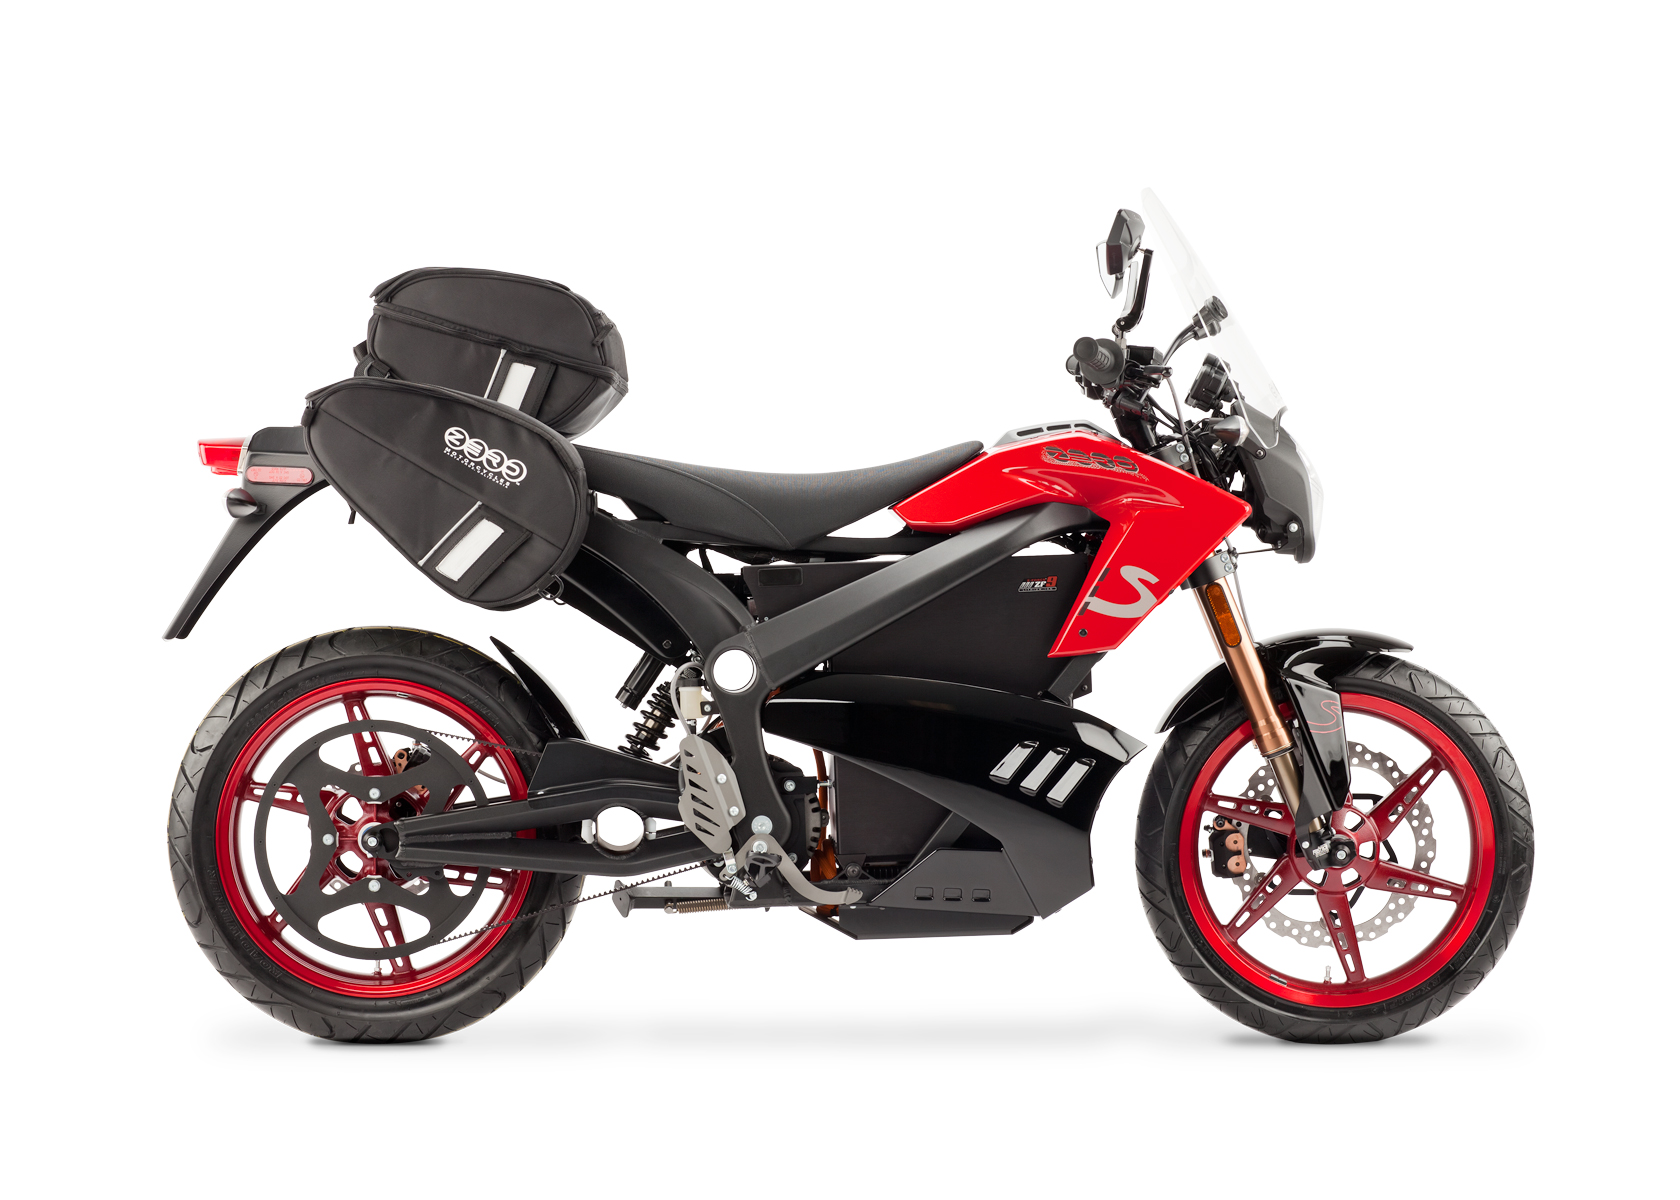 2012 Zero S Electric Motorcycle: Red Profile Right with Side Bags and Windscreen, White Background